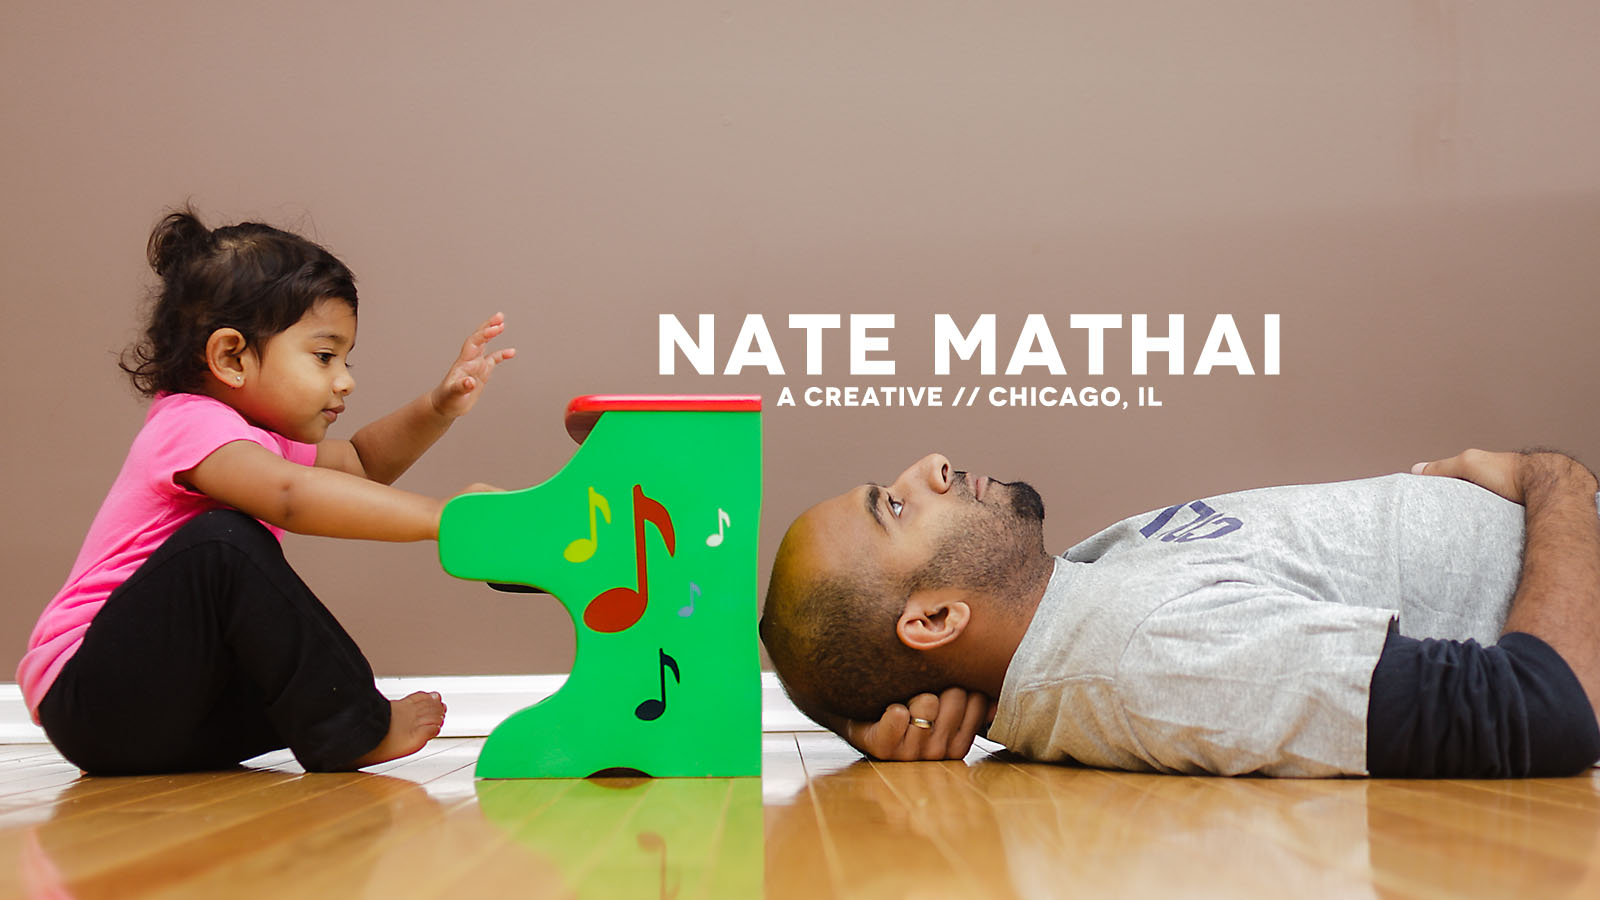 top image for Fair-Weather Fans by chicago wedding photographer nate mathai